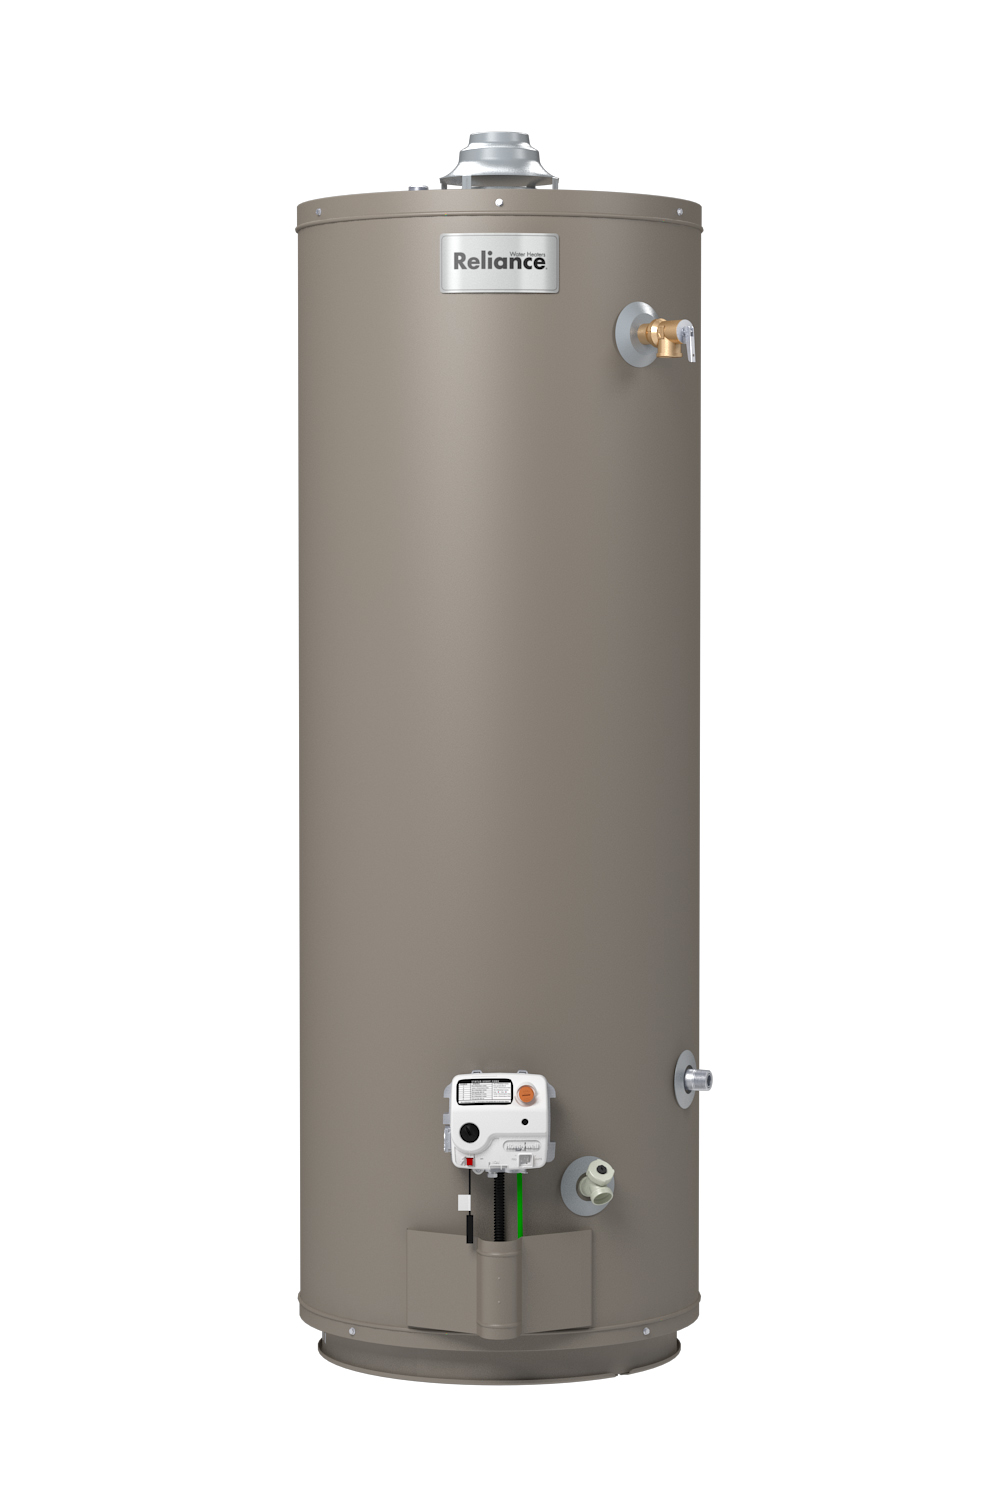 Reliance Mobile Home Gal Natural Gas Liquid Propane Water Heater